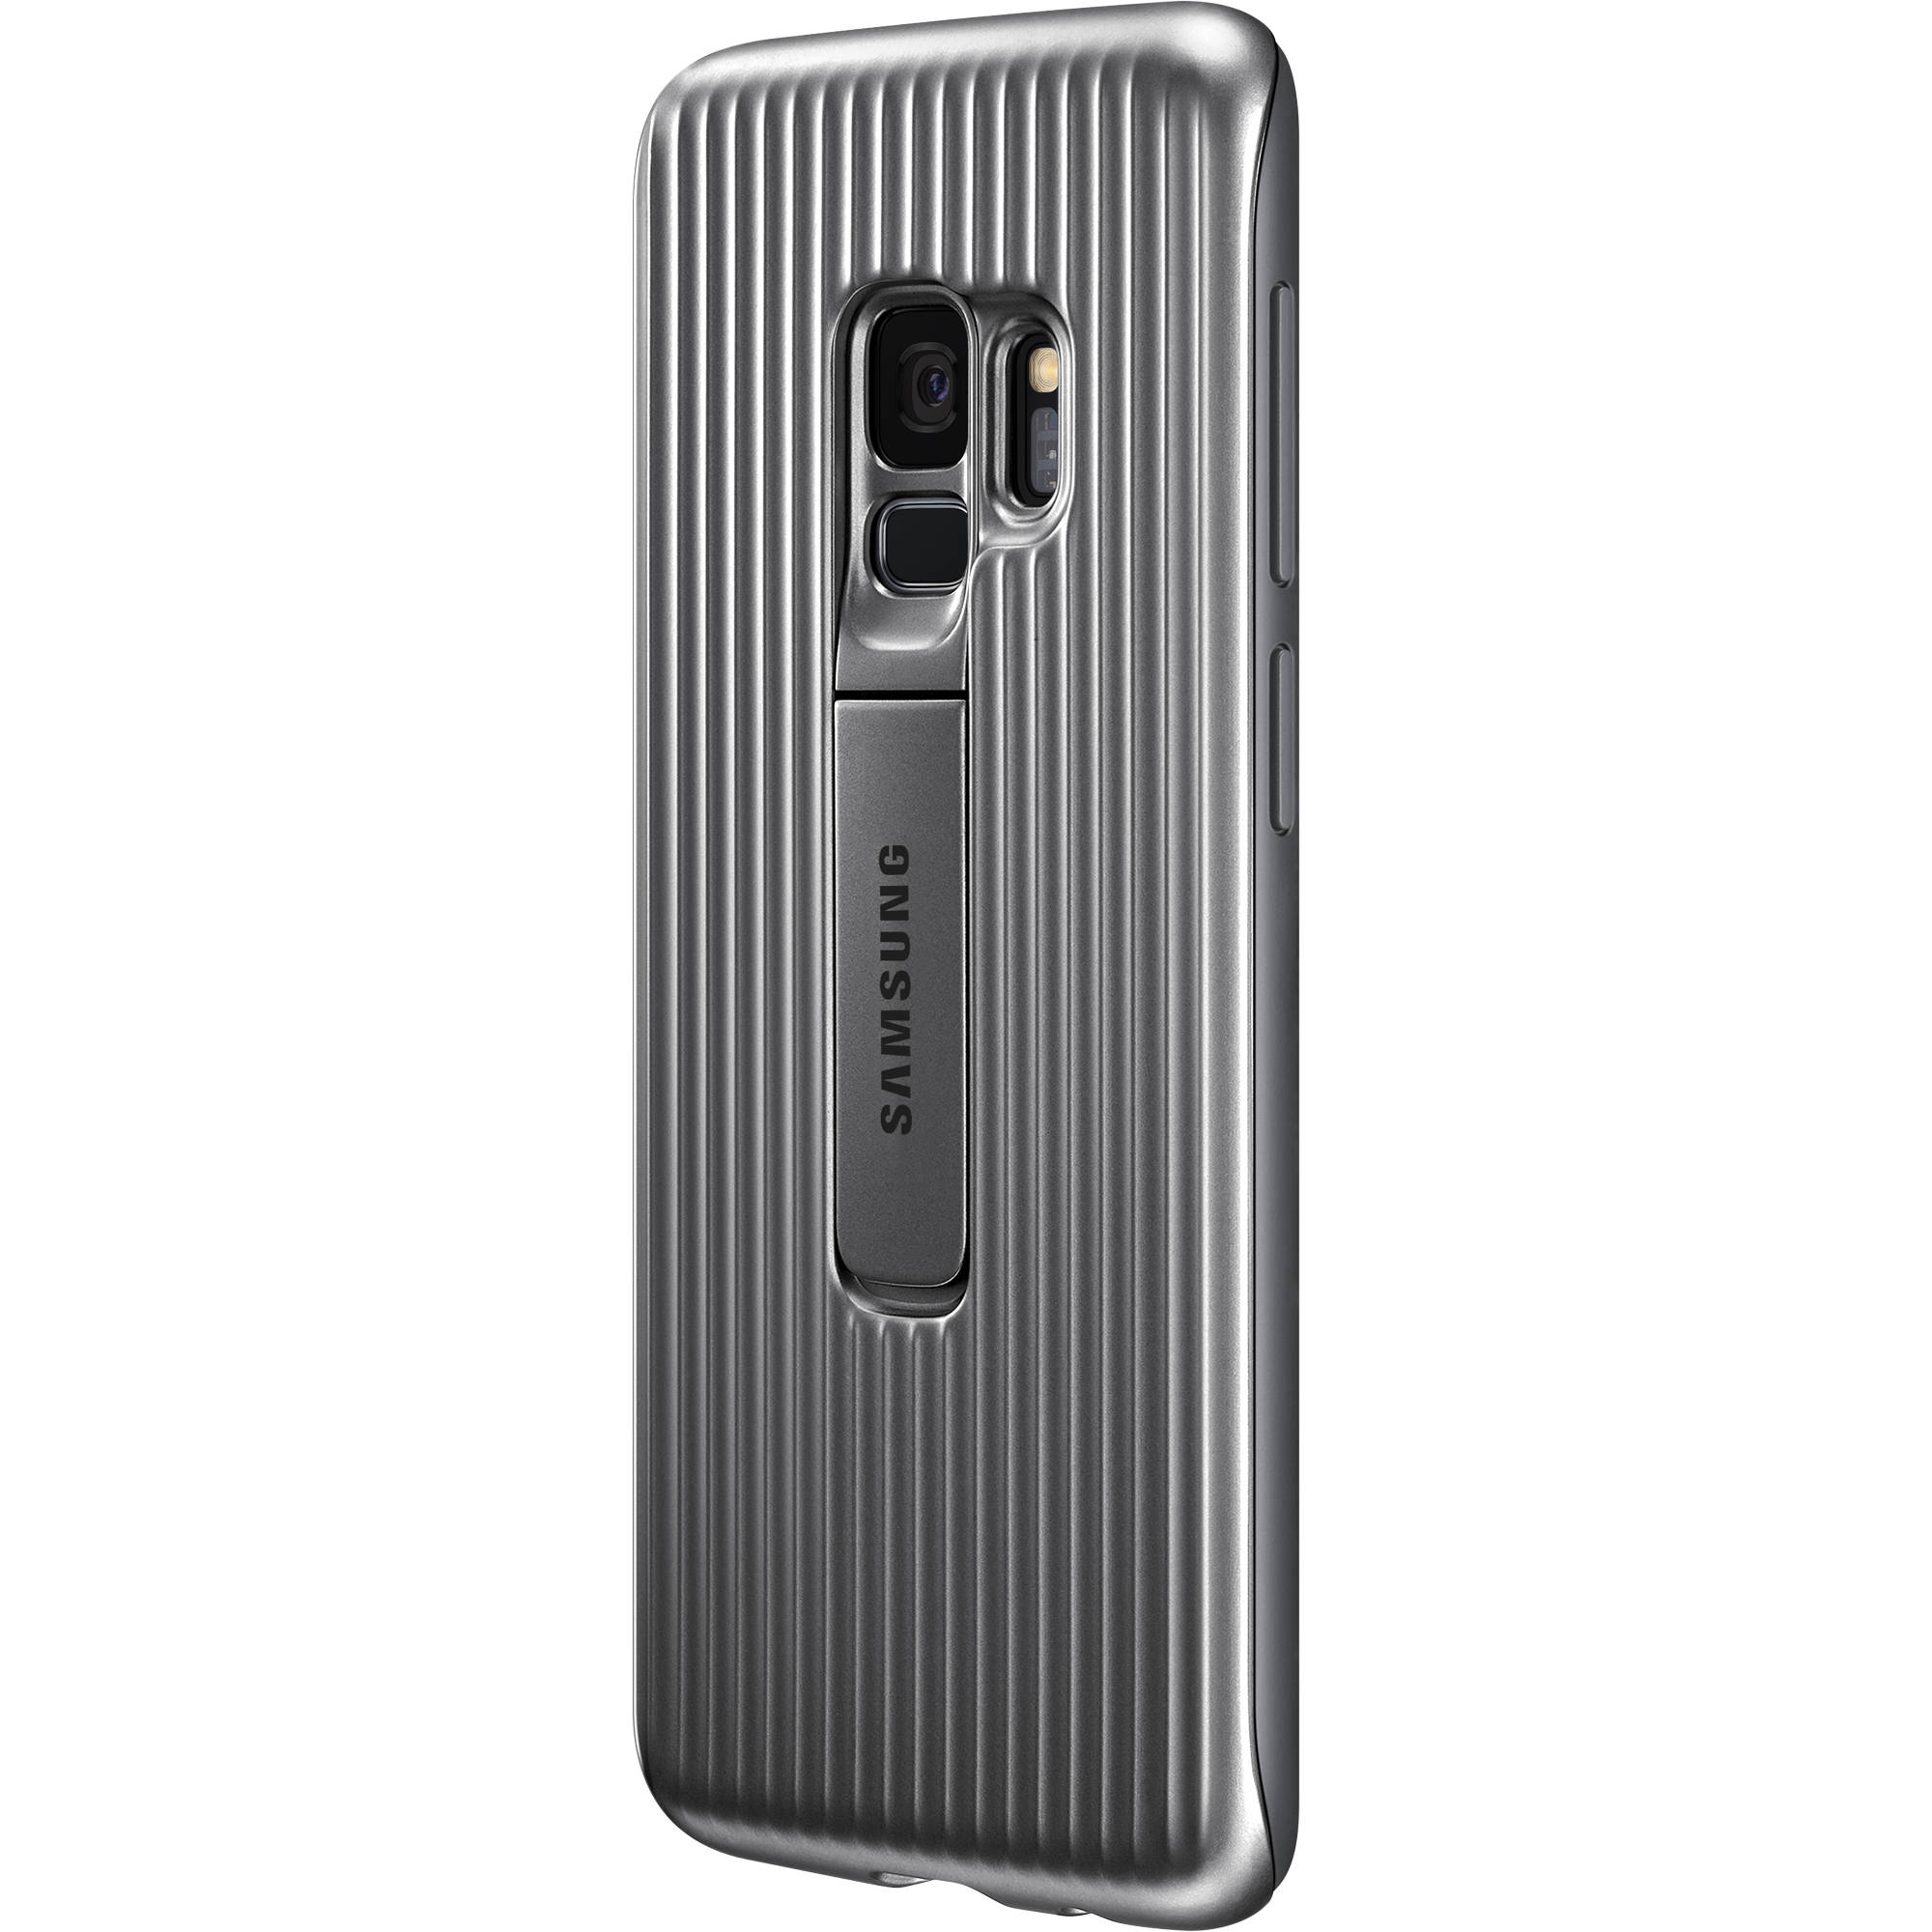 att candybar phone rug launches rugged sgh at front intomobile samsung t